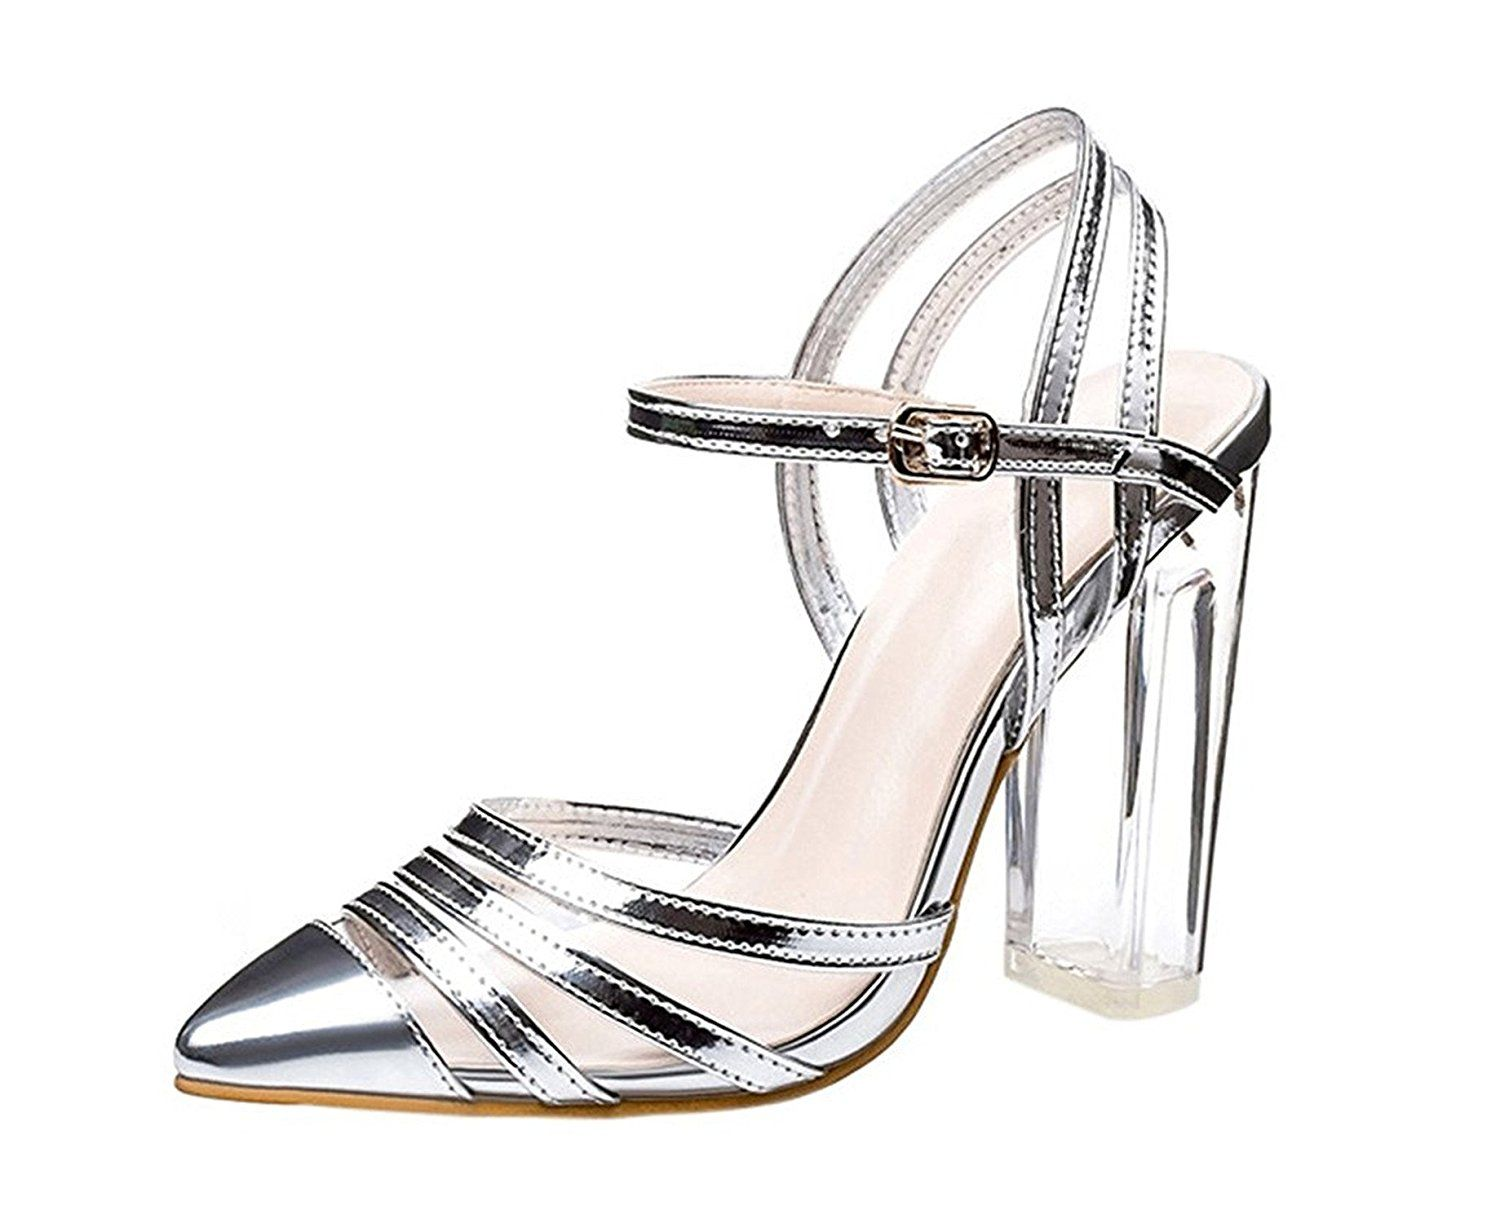 Shoes zone sandals - Cheap Shoe Zone Shoes Buy Quality Shoe Ventilation Directly From China Shoes Suppliers New 2016 Women Pumps Sexy Prom Rhinestone Chinese Wedding Shoes